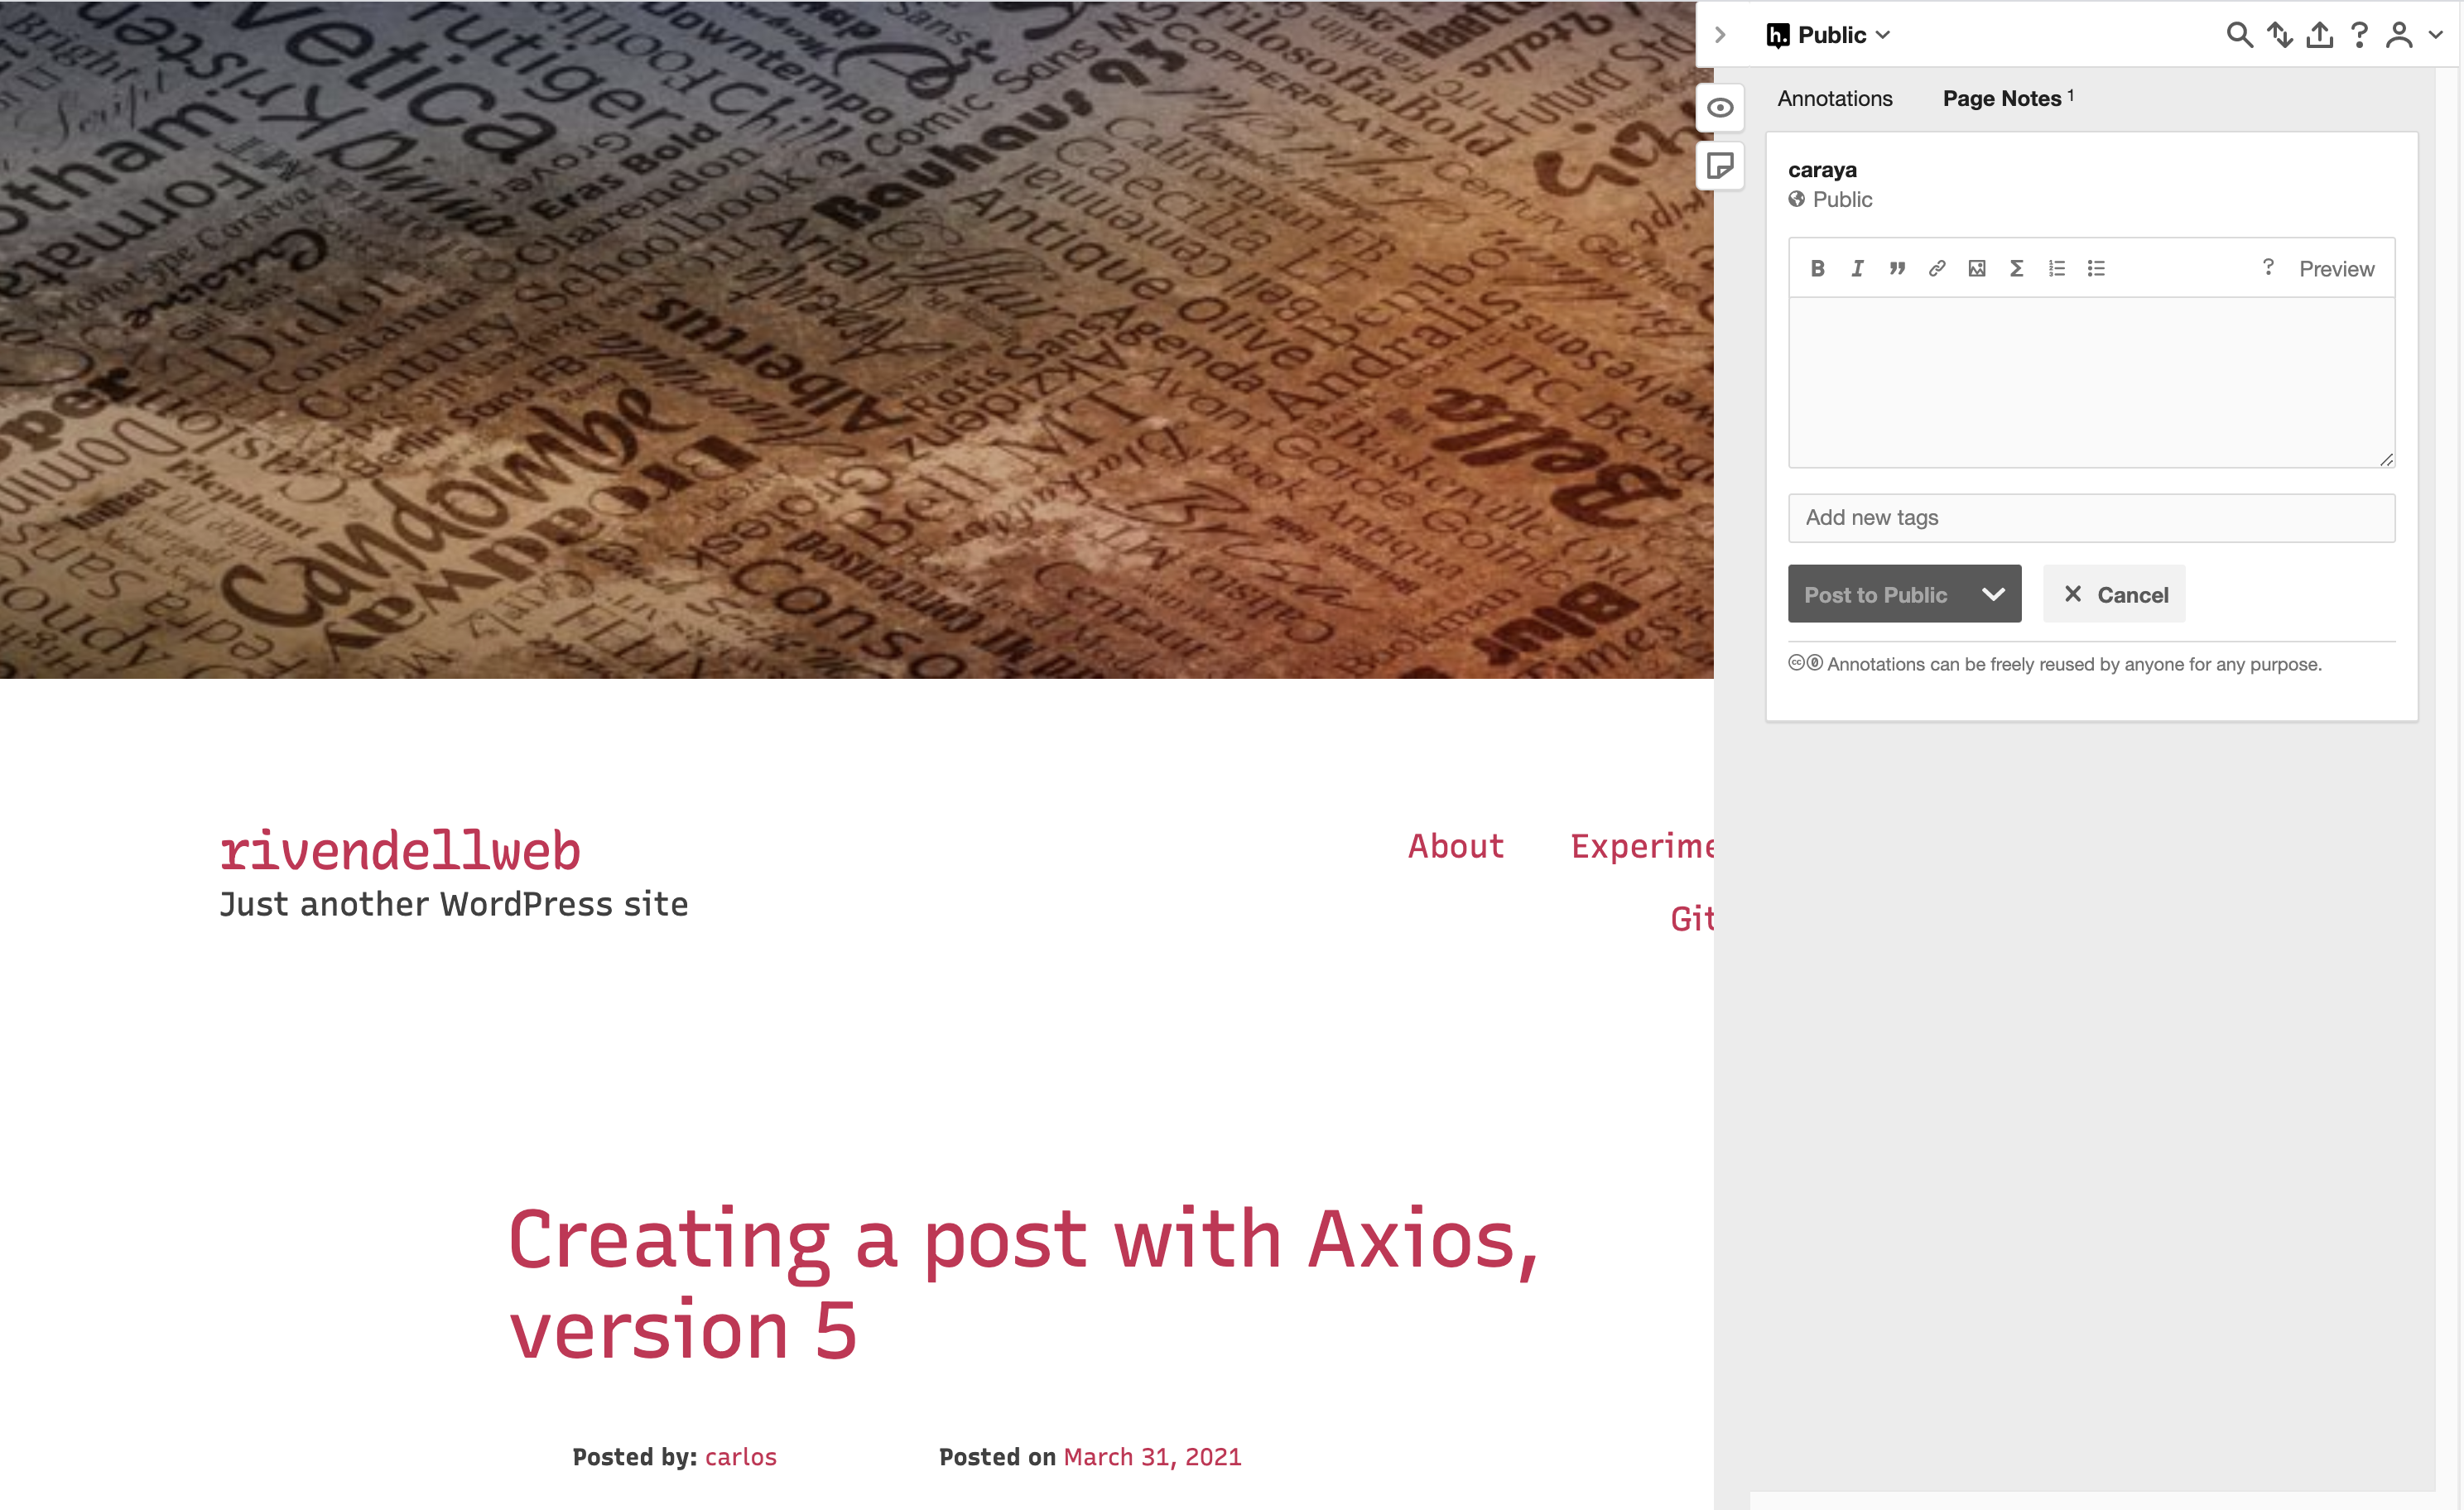 Hypothes.is running on a WordPress site